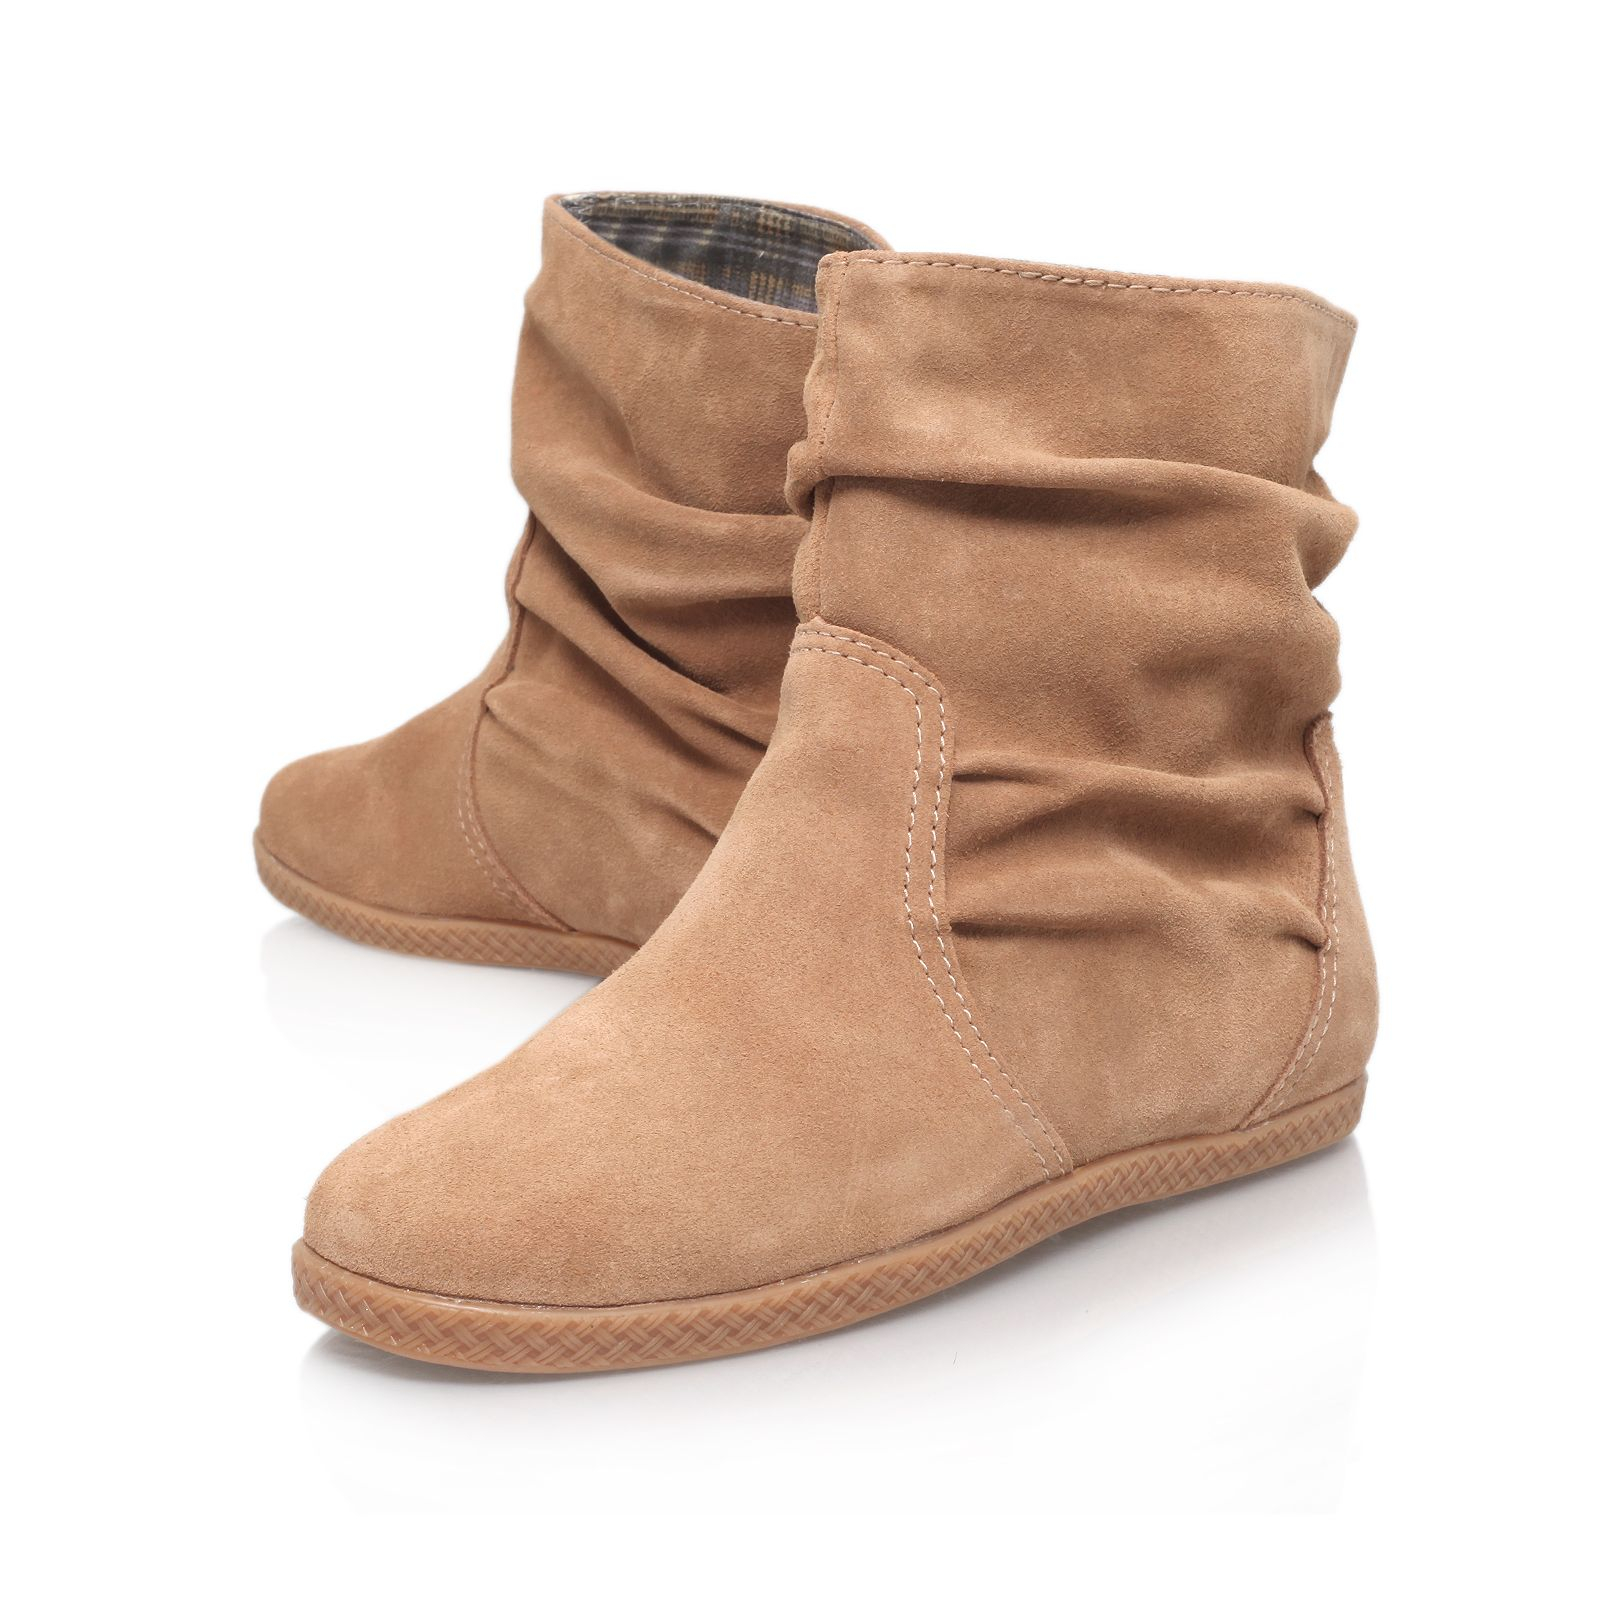 Find the latest styles in women's booties and ankle boots, including flat and heeled, suede and leather, and much more! Enjoy free shipping every day with DSW.